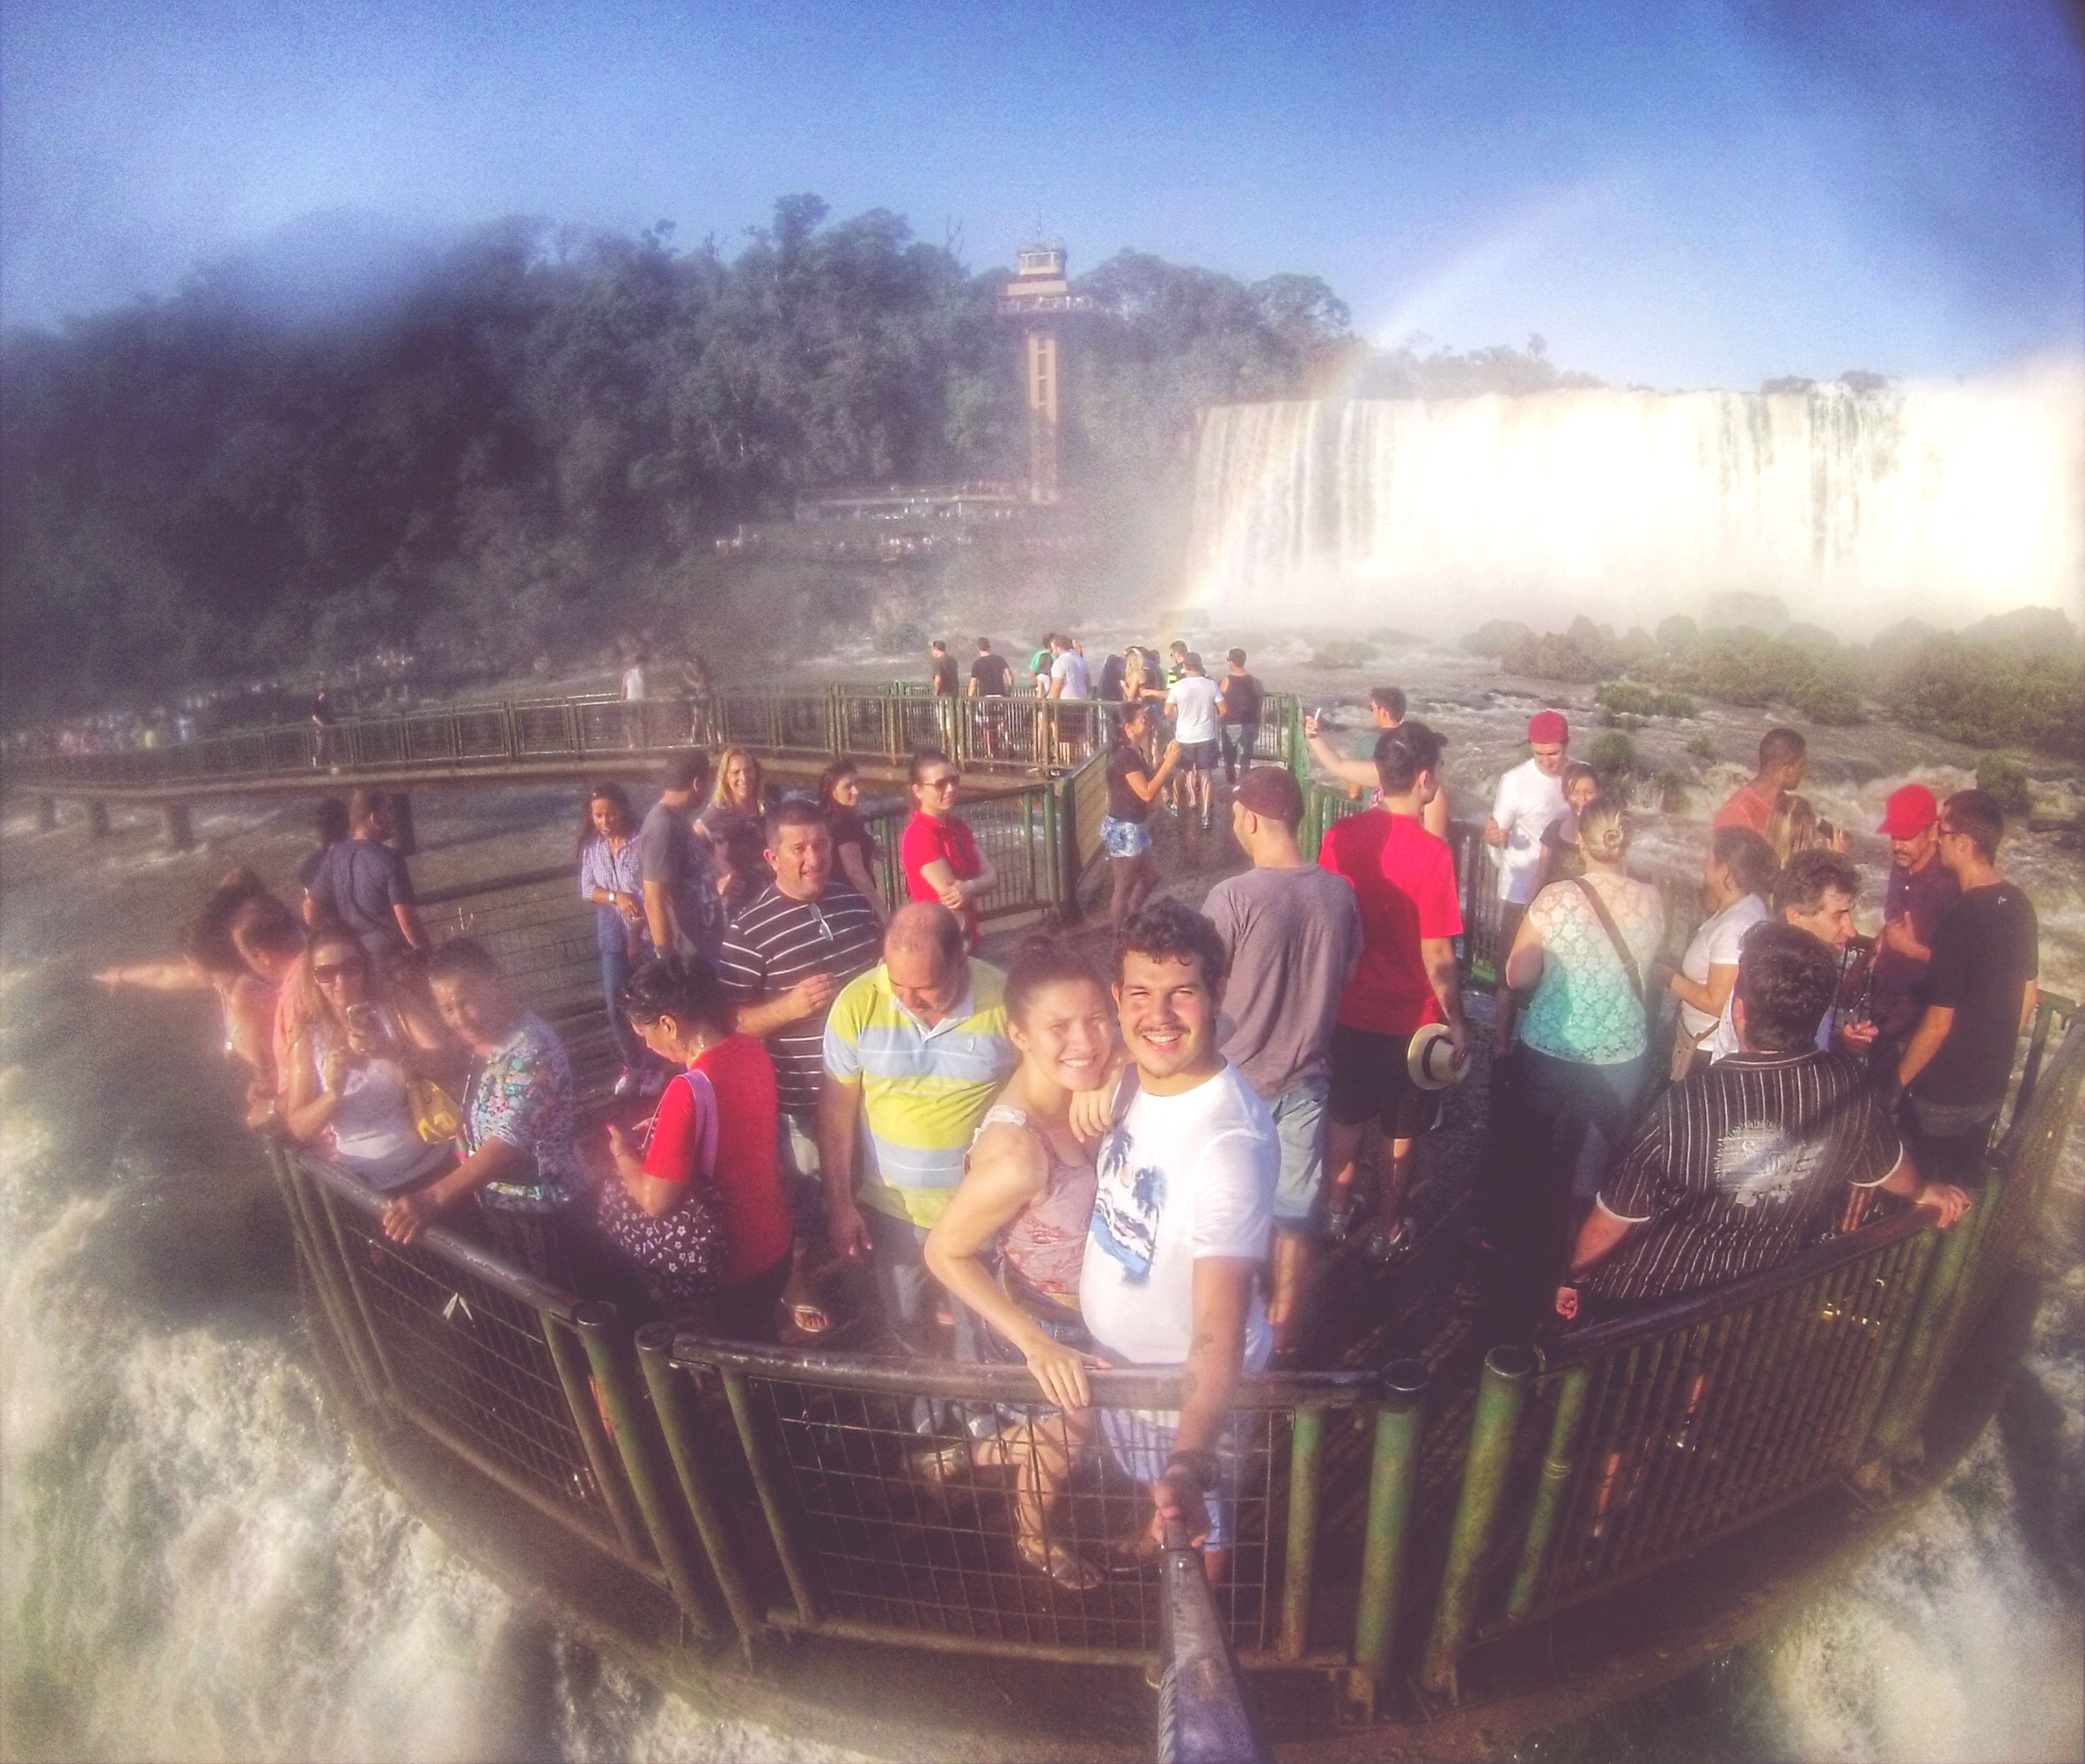 lifestyles, large group of people, leisure activity, men, water, person, enjoyment, togetherness, mixed age range, medium group of people, vacations, tree, fun, river, enjoying, lake, travel, reflection, outdoors